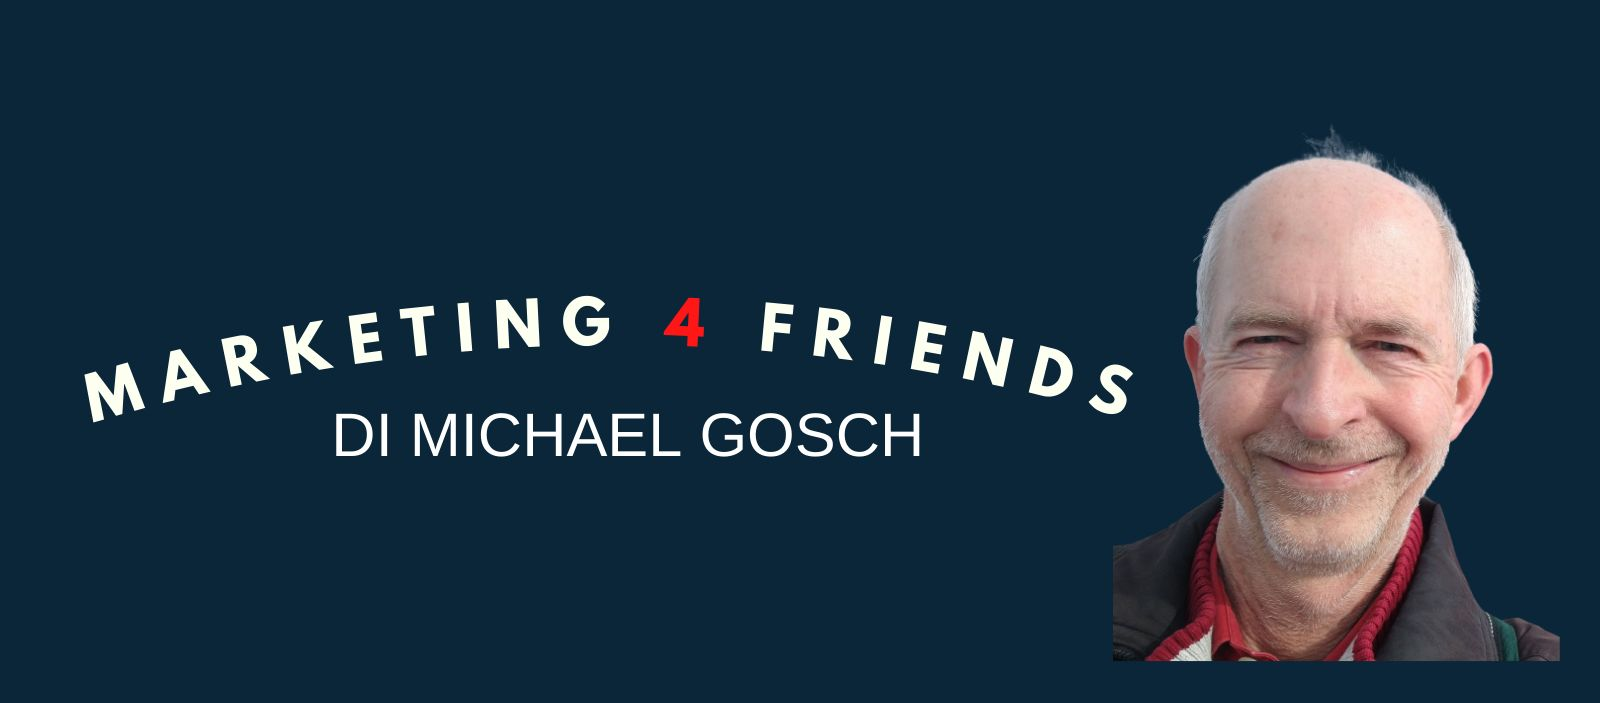 Marketing4Friends - DI Michael Gosch